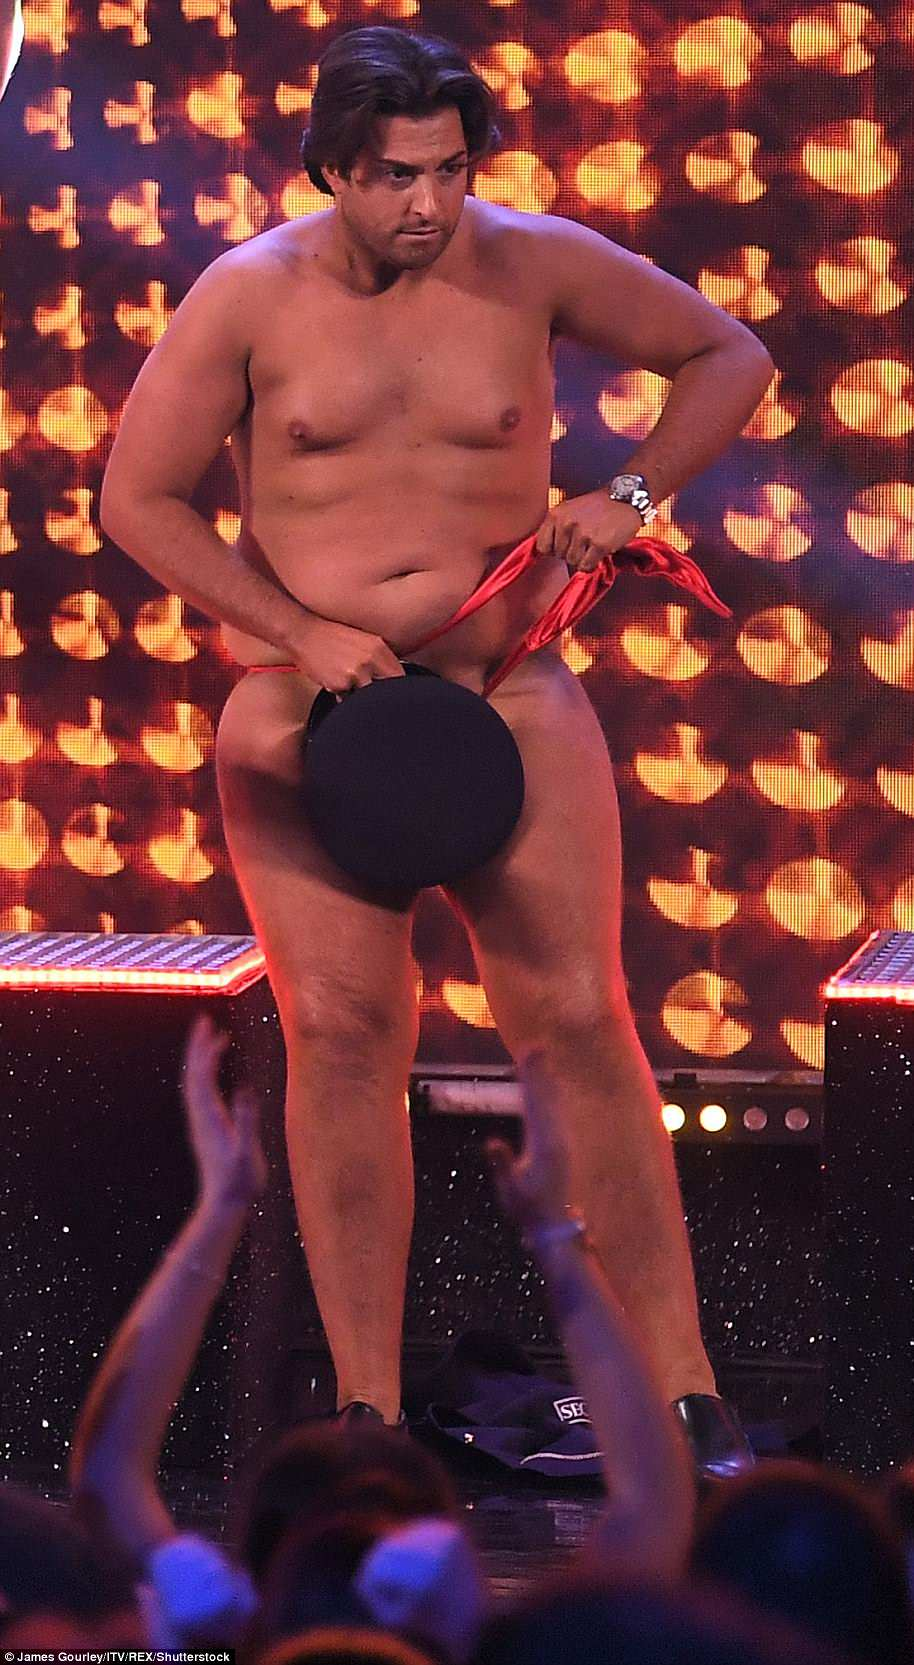 Stripping off: James 'Arg' Argent made a triumphant appearance on stage as part of ITV's The Real Full Monty on Wednesday night to raise awareness for prostate and testicular cancer